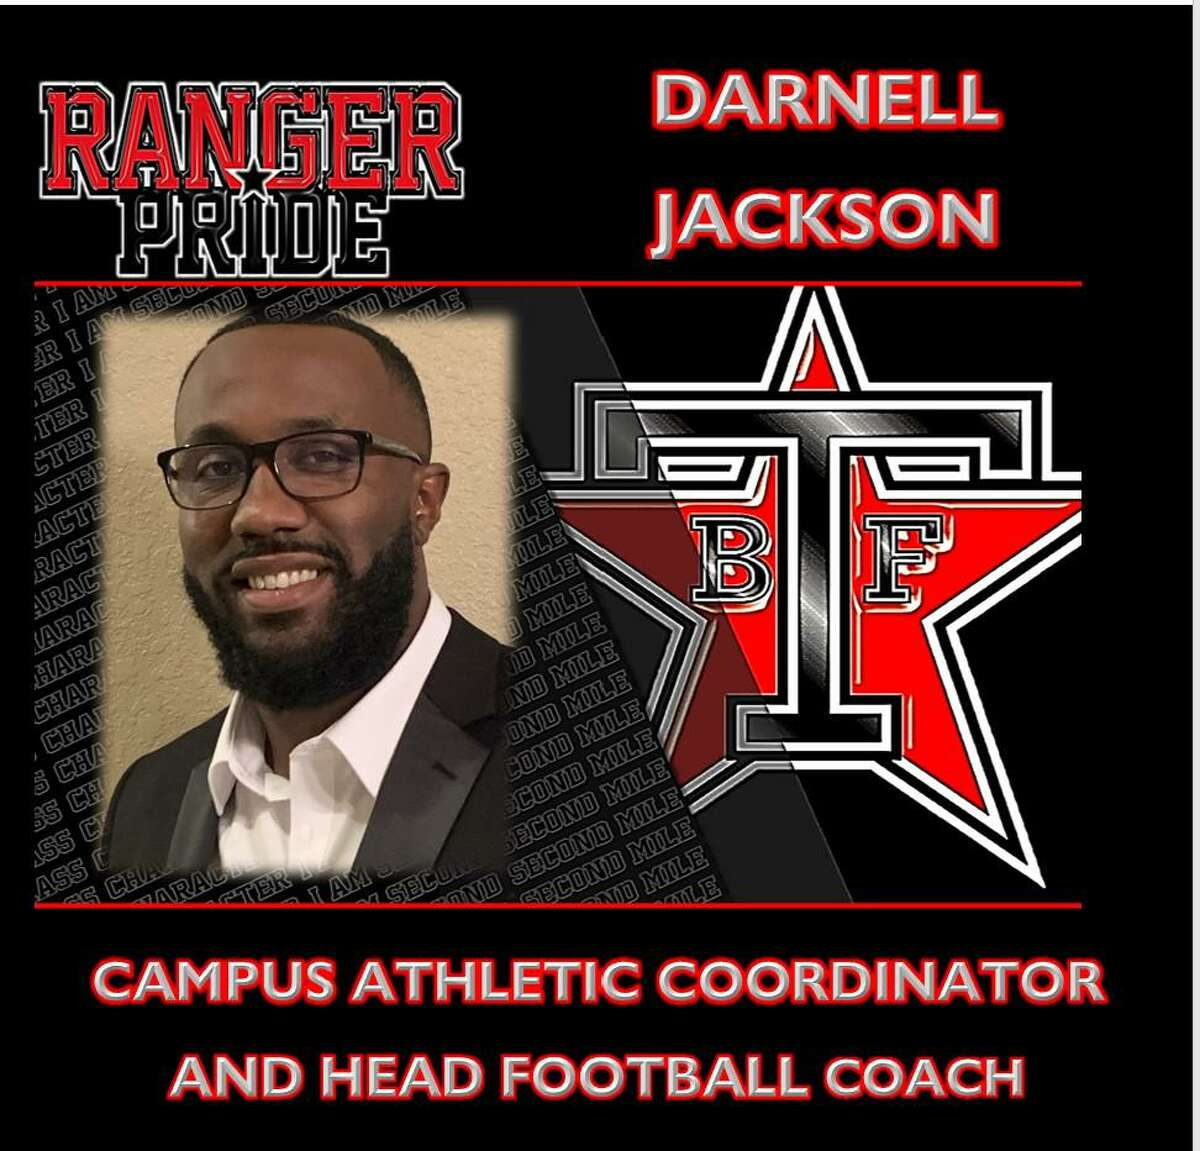 Terry High School graduate Darnell Jackson was promoted from offensive coordinator to Rangers head football coach. Jackson was an all-state receiver at Terry before joining the coaching staff in 2014.